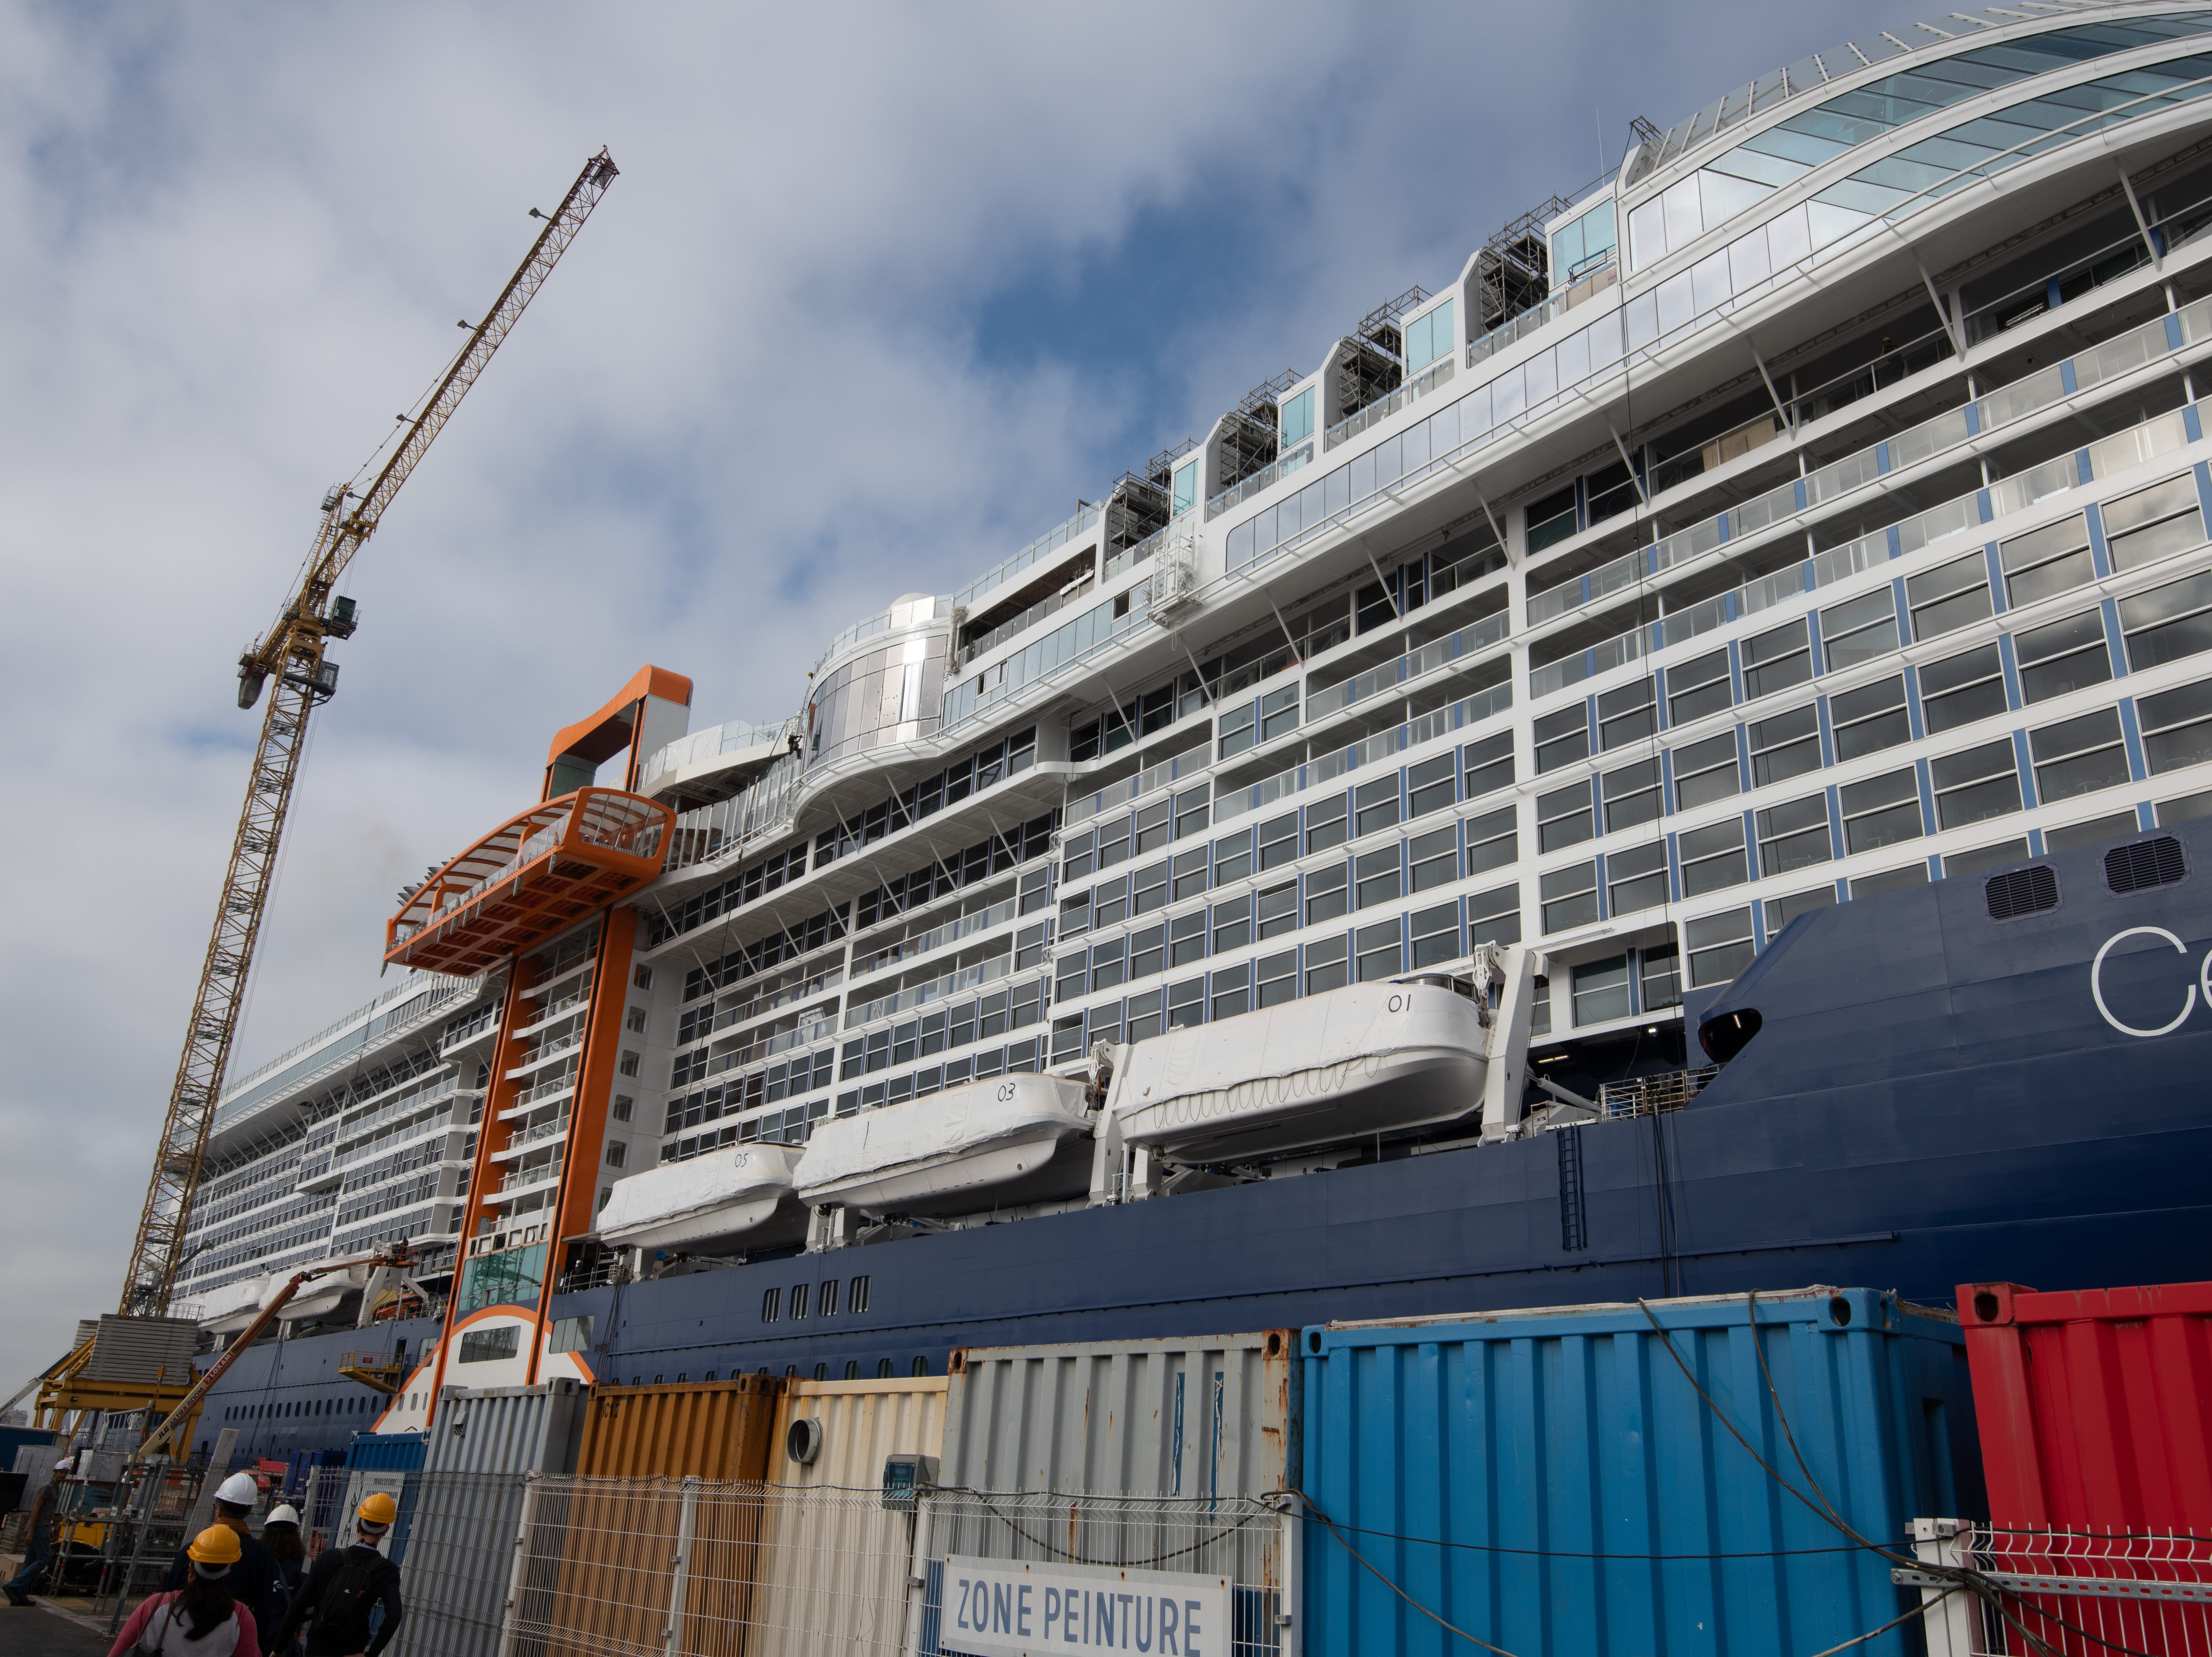 Celebrity Cruises has ordered four vessels in the new series, which is being called the Edge Class.